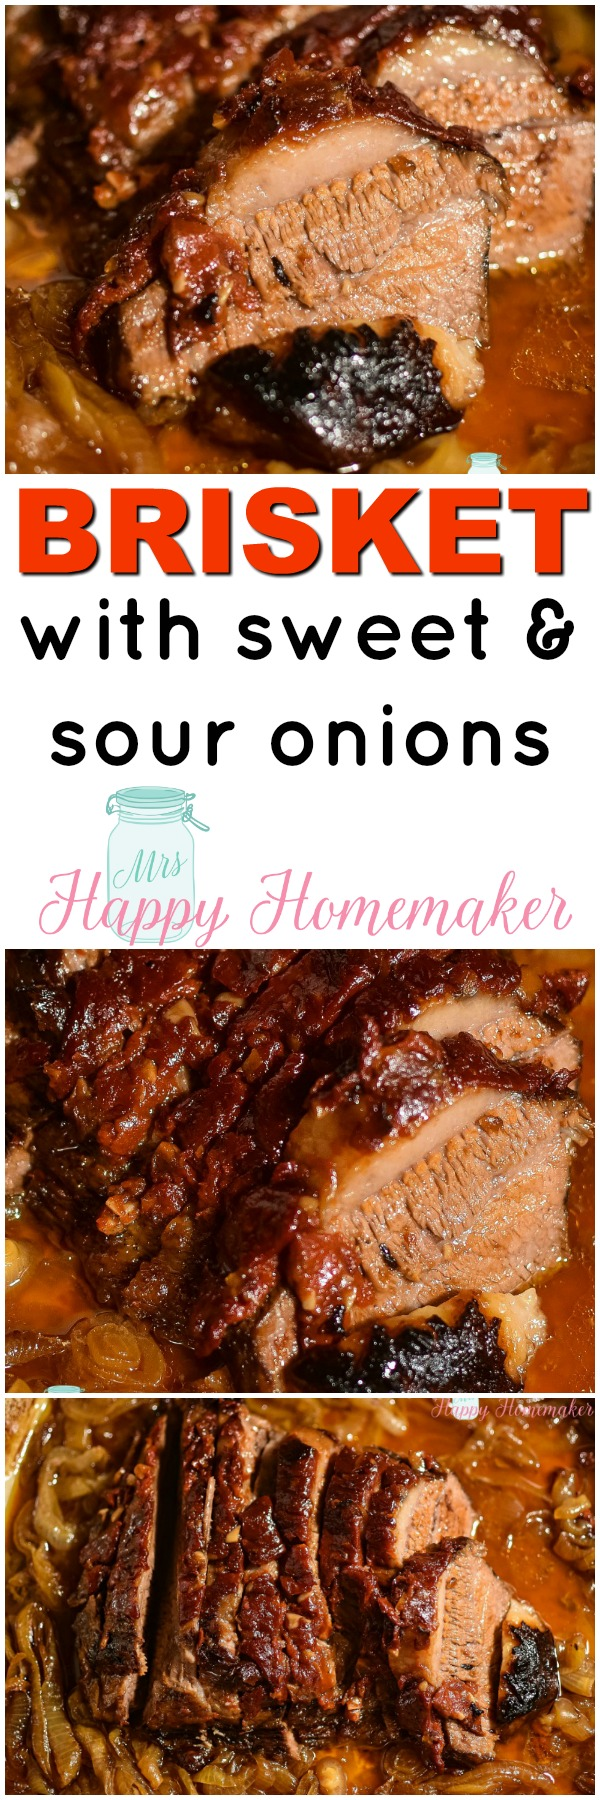 Brisket with Sweet & Sour Onions - this oven braised recipe requires only 7 ingredients & is absolutely amazing in flavor and tenderness. | MrsHappyHomemaker.com @MrsHappyHomemaker